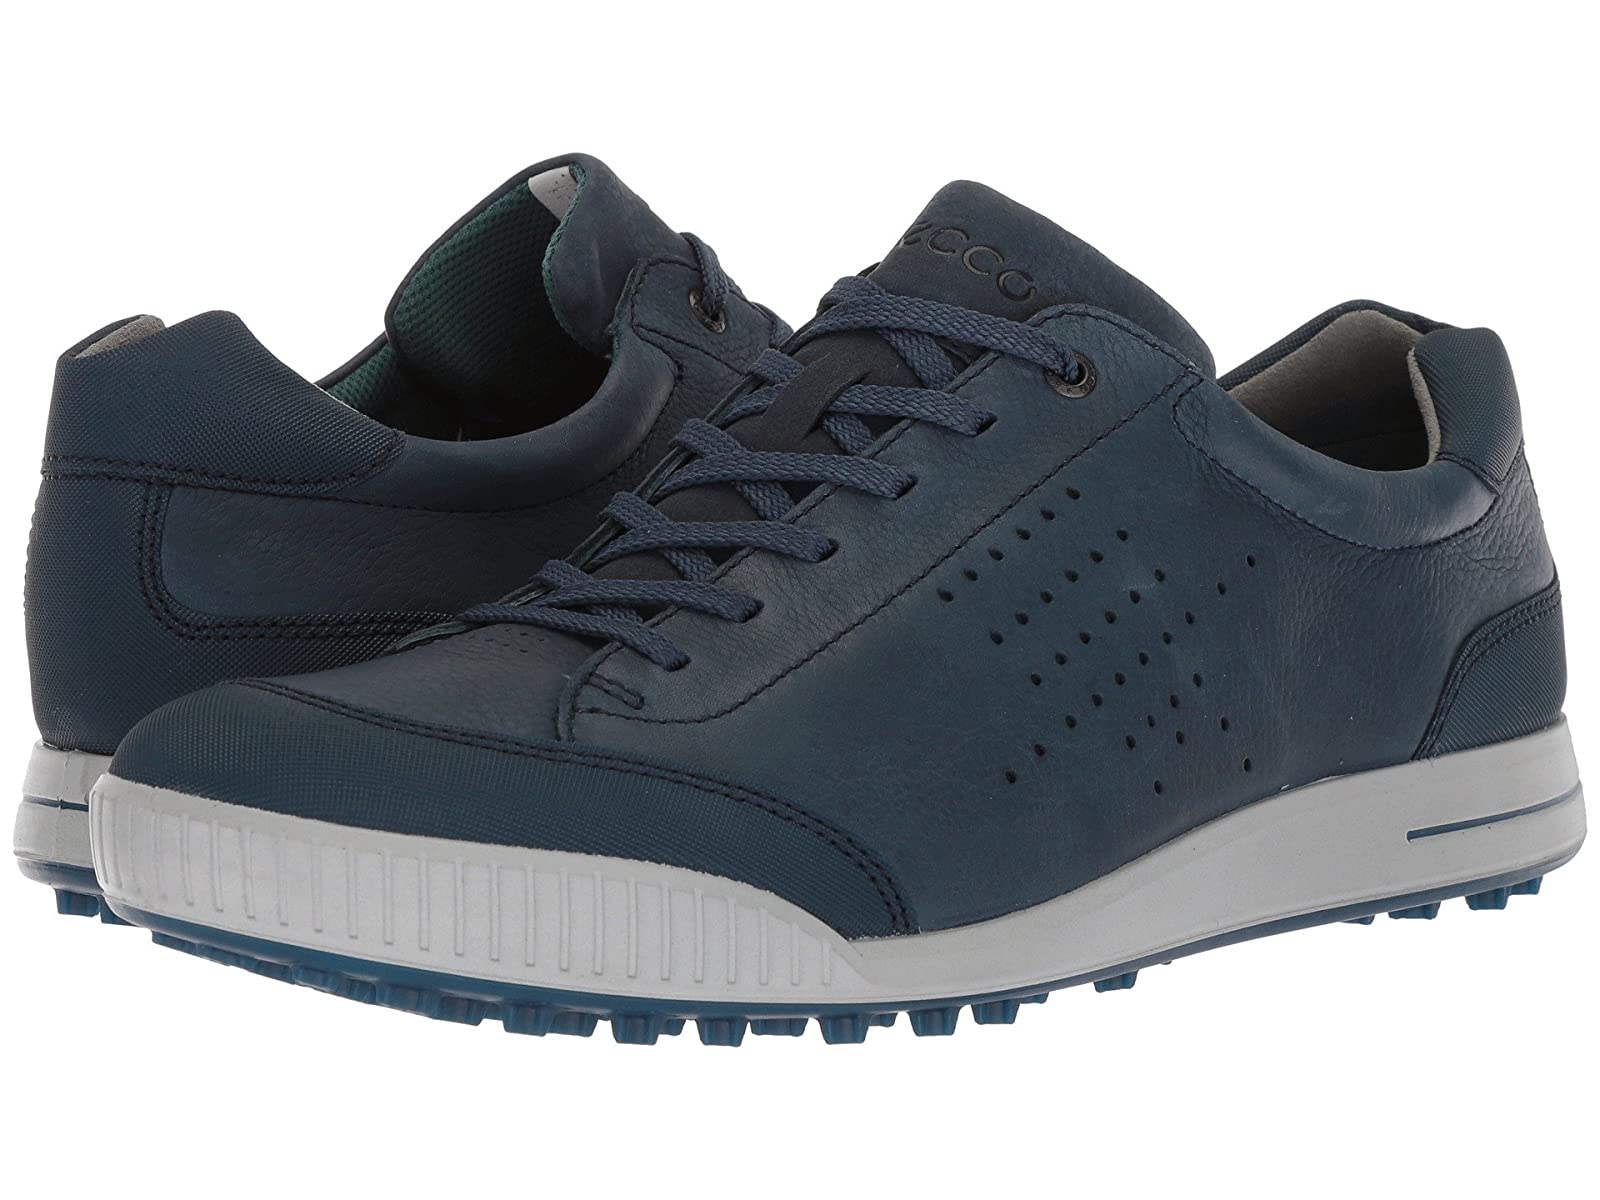 ECCO Golf Street Retro HydroMaxAtmospheric grades have affordable shoes